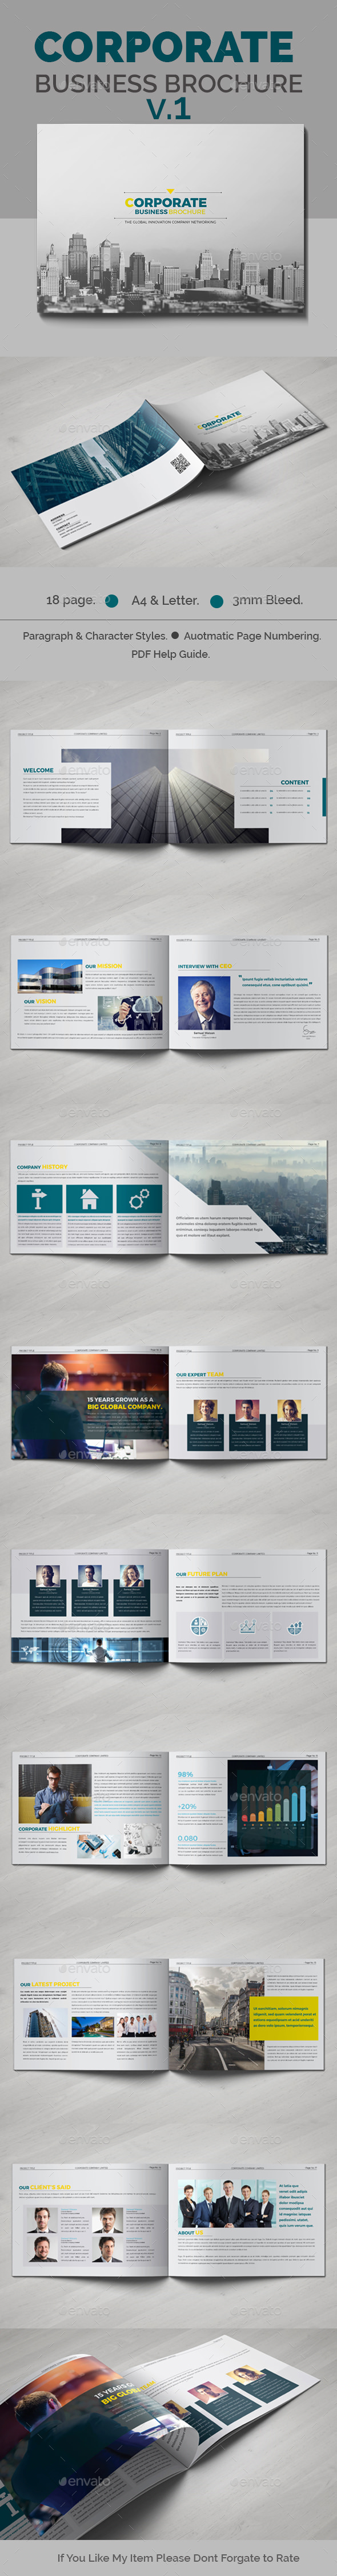 Corporate Business Brochure Template InDesign INDD. Download here: http://graphicriver.net/item/corporate-business-brochure-v1/16055302?ref=ksioks